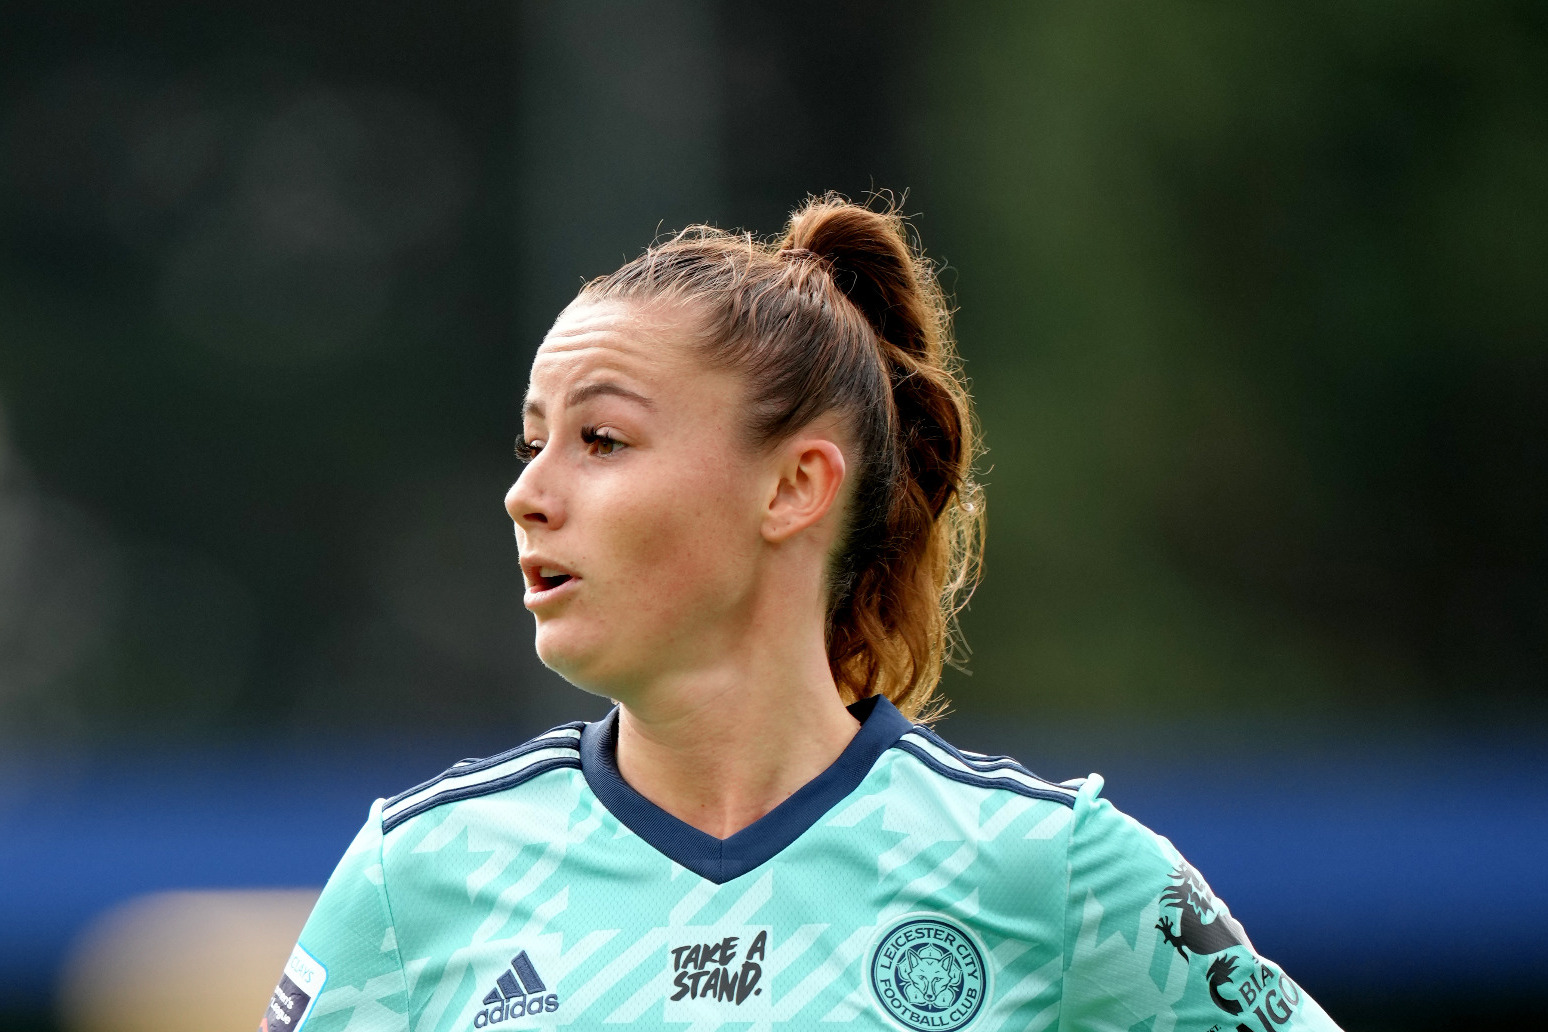 Hannah Cain gets Wales call for Women's World Cup qualifiers